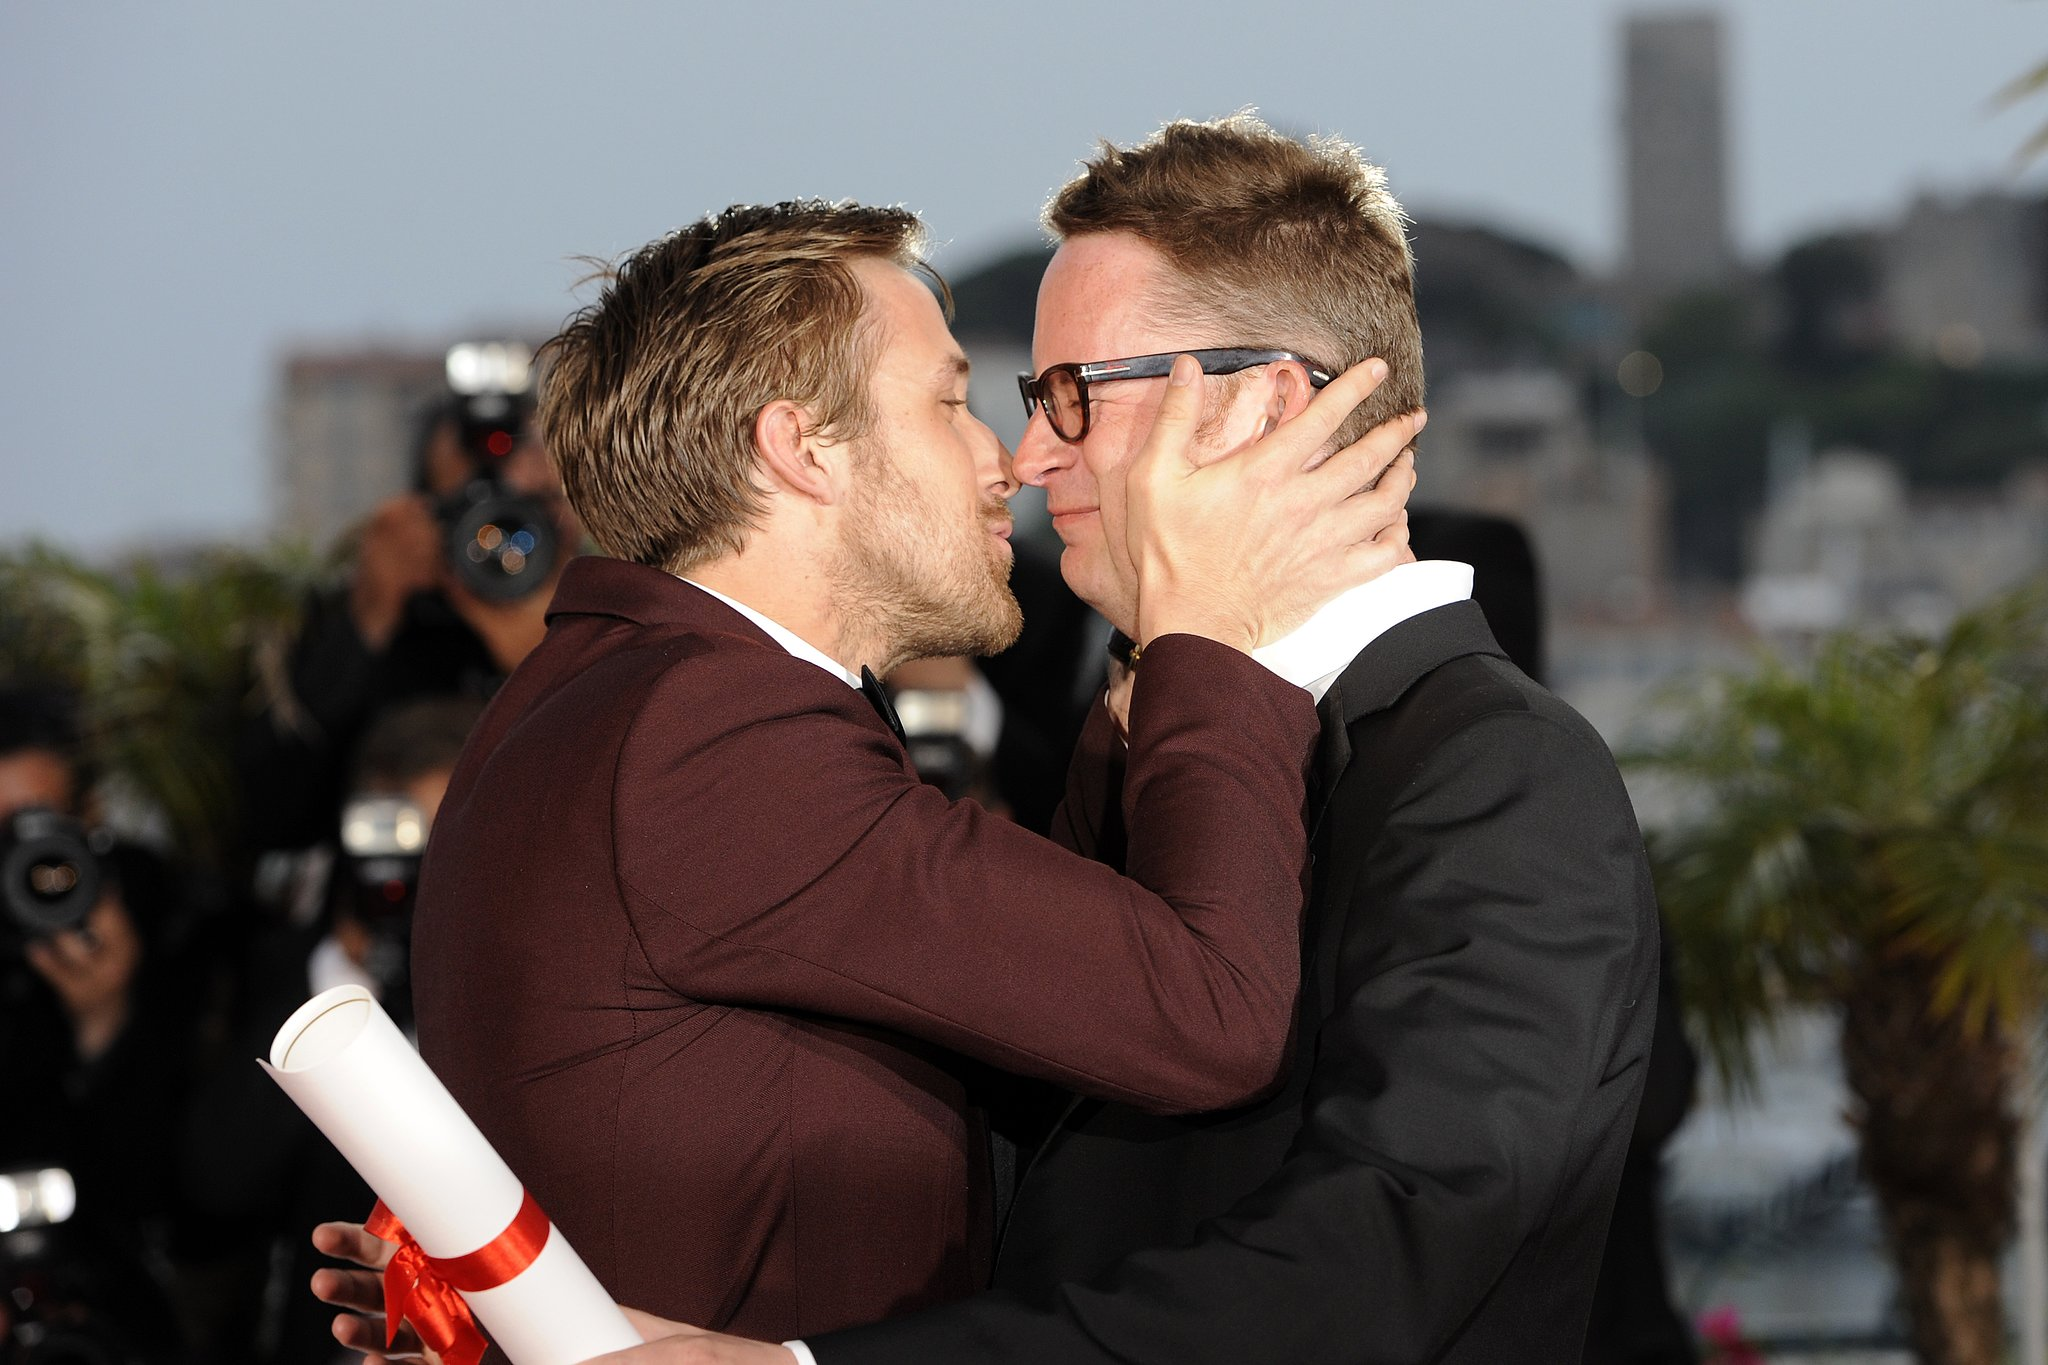 Ryan Gosling gave director Nicolas Winding Refn a congratulatory kiss after he was awarded won the award for best director the 64th Cannes Film Festival in 2011.